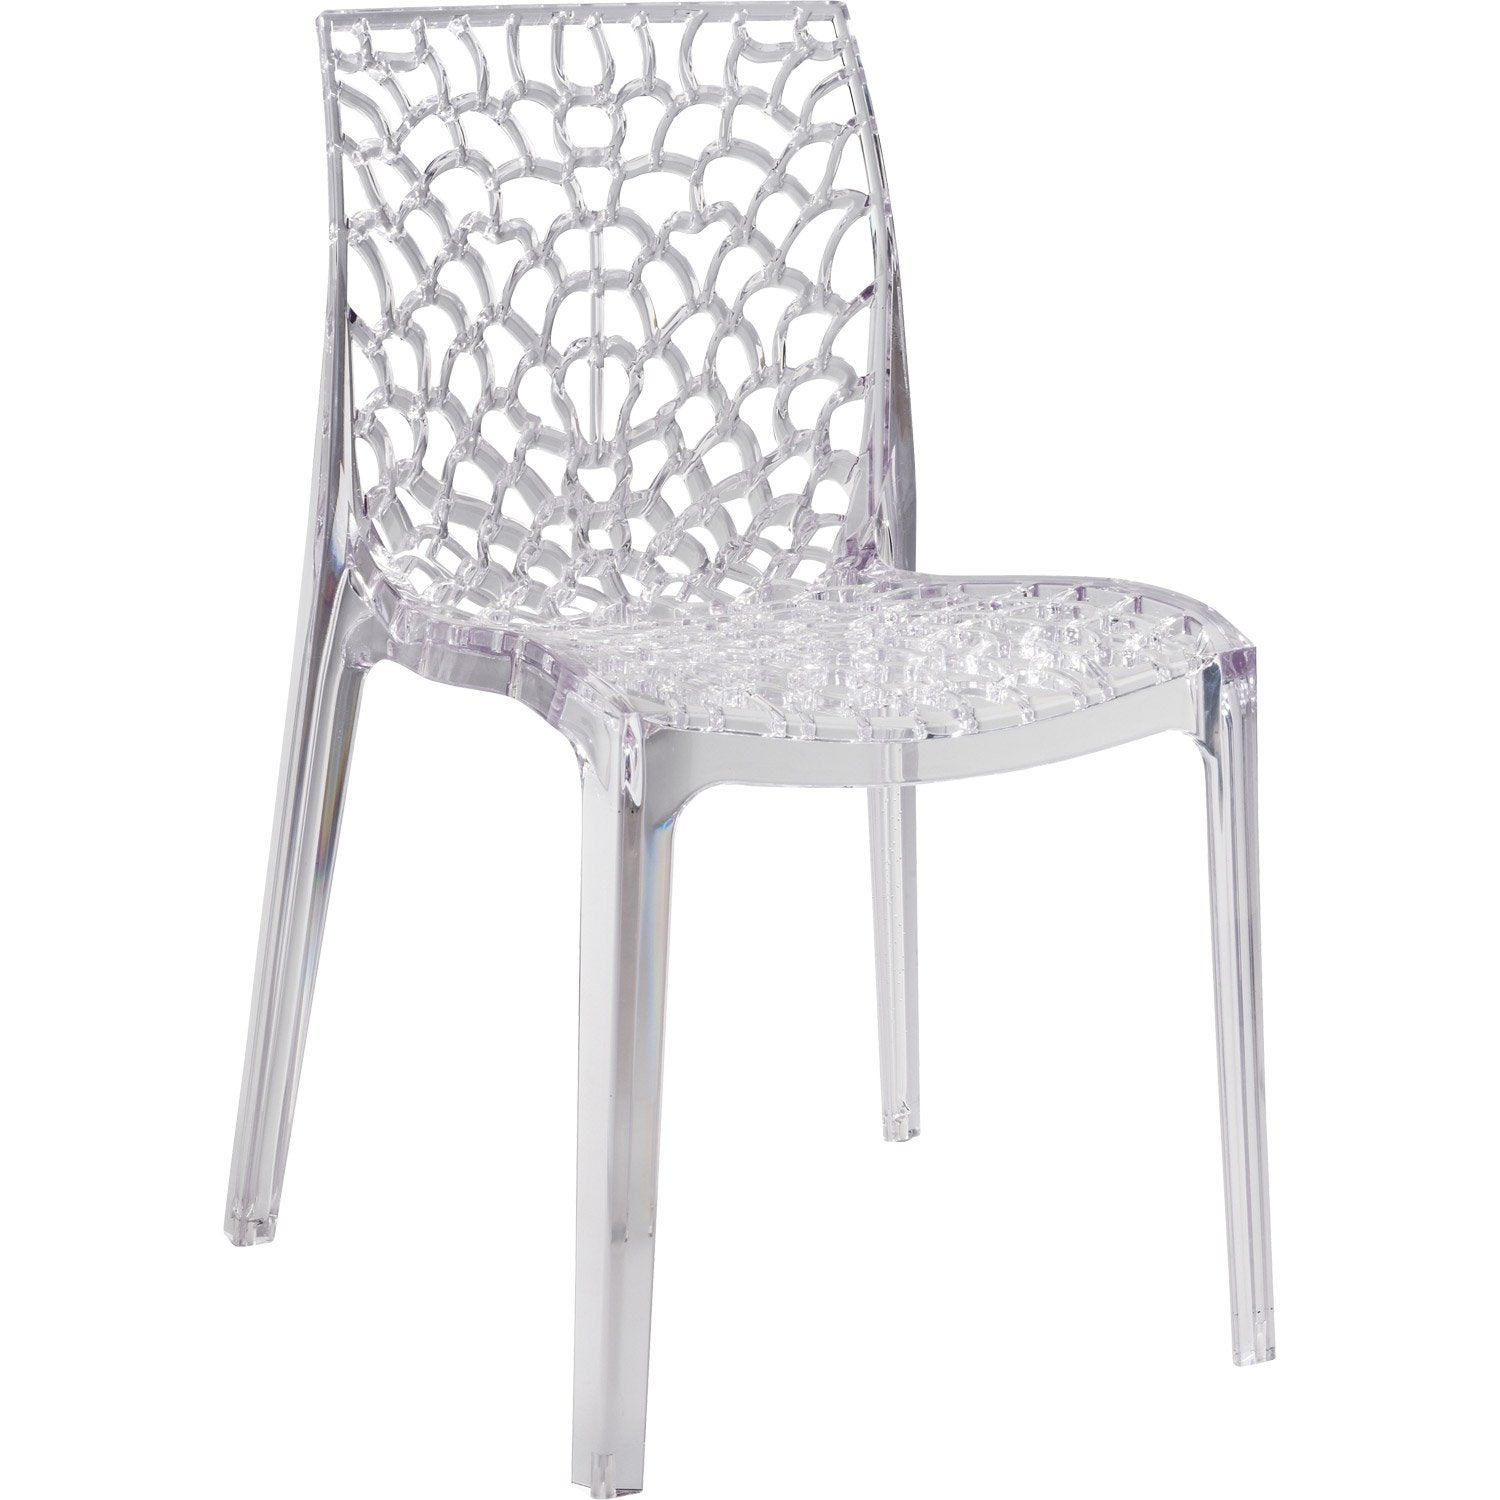 Chaise de jardin en polycarbonate grafik lux transparent for Table de cuisine avec 6 chaises